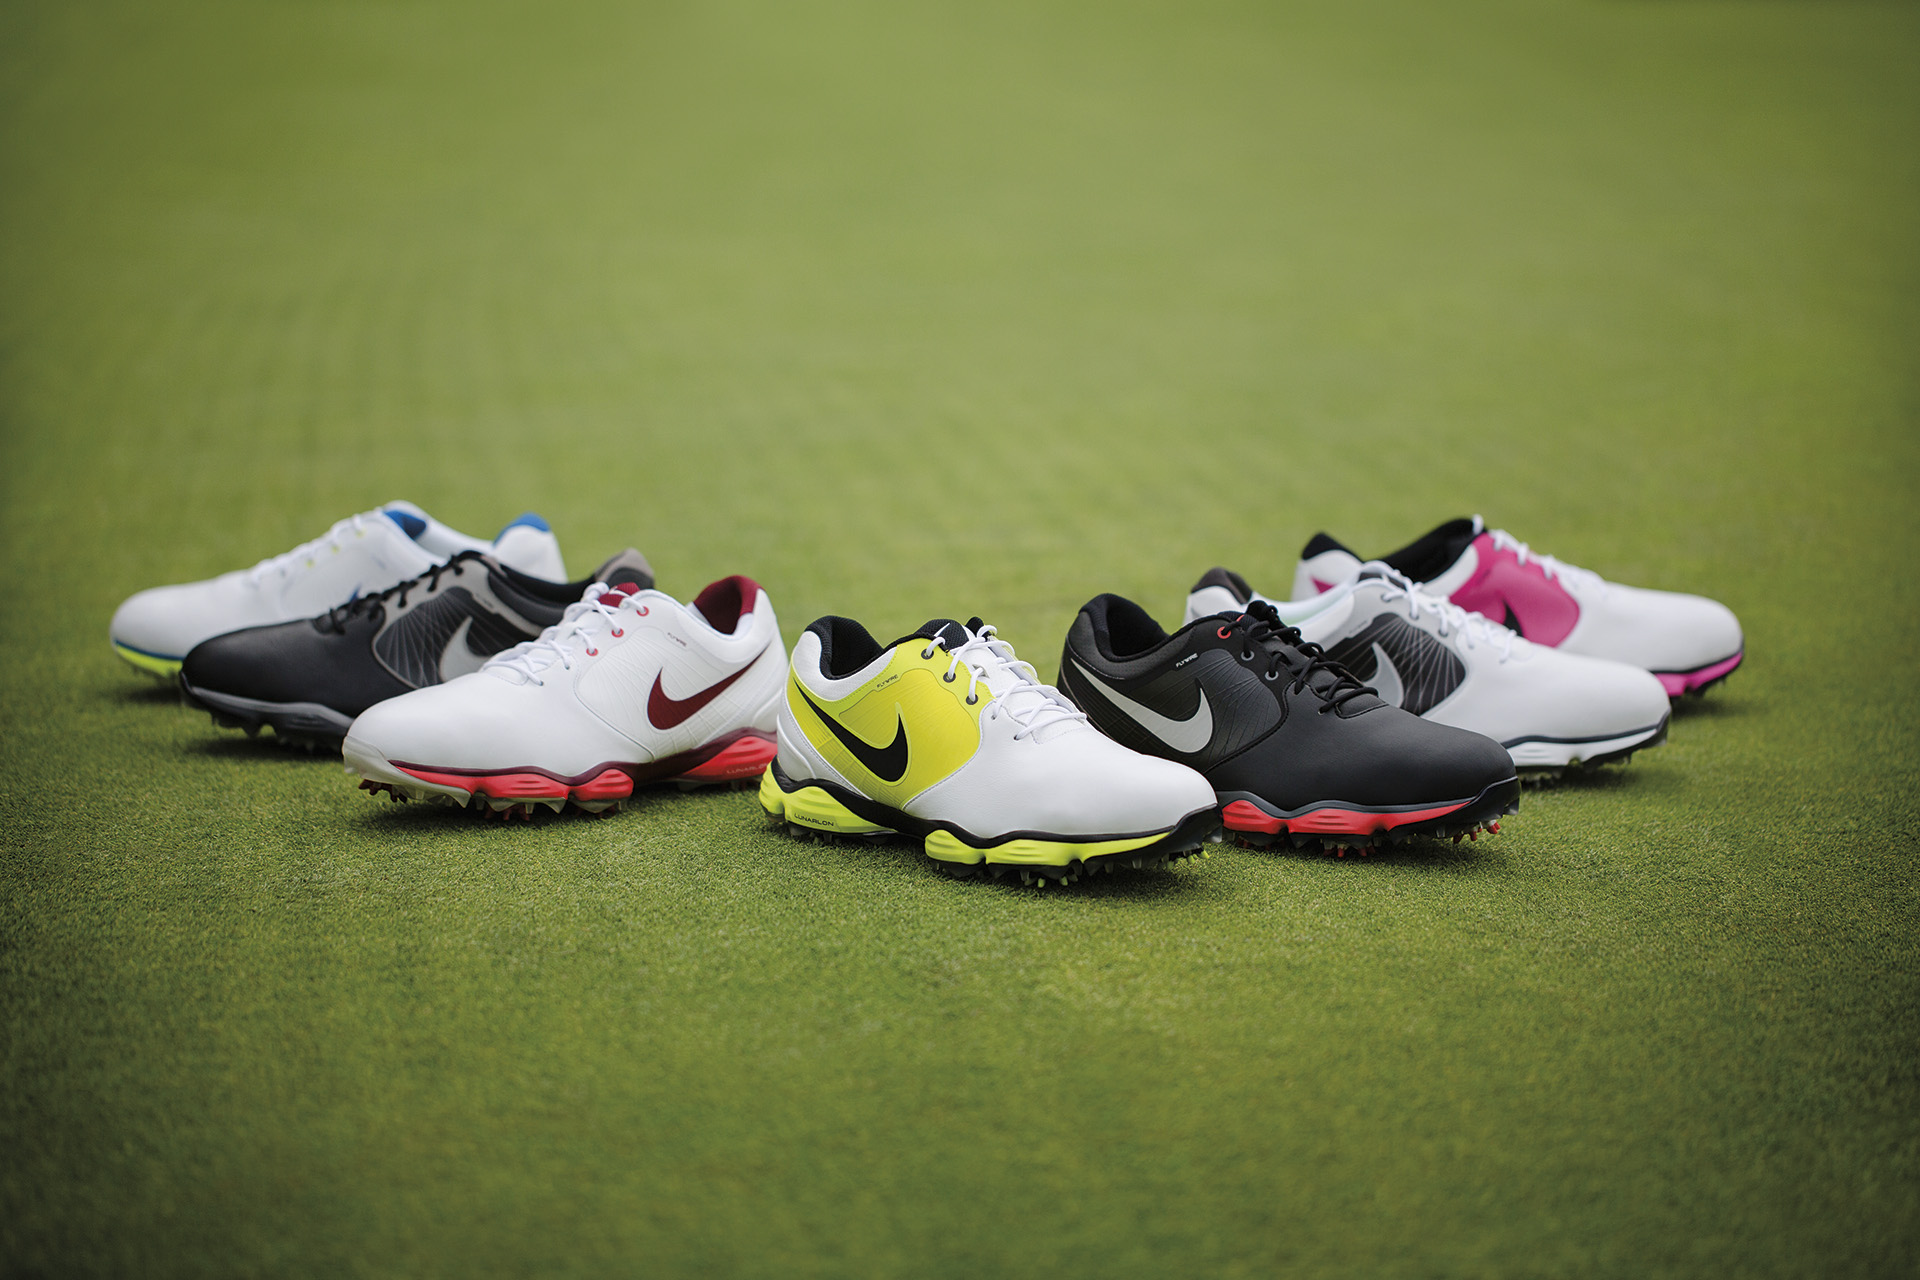 sports shoes 7ac42 de753 Vibrant Colors, Lightweight Cushioning Combine in the Nike Lunar Control  Golf ...